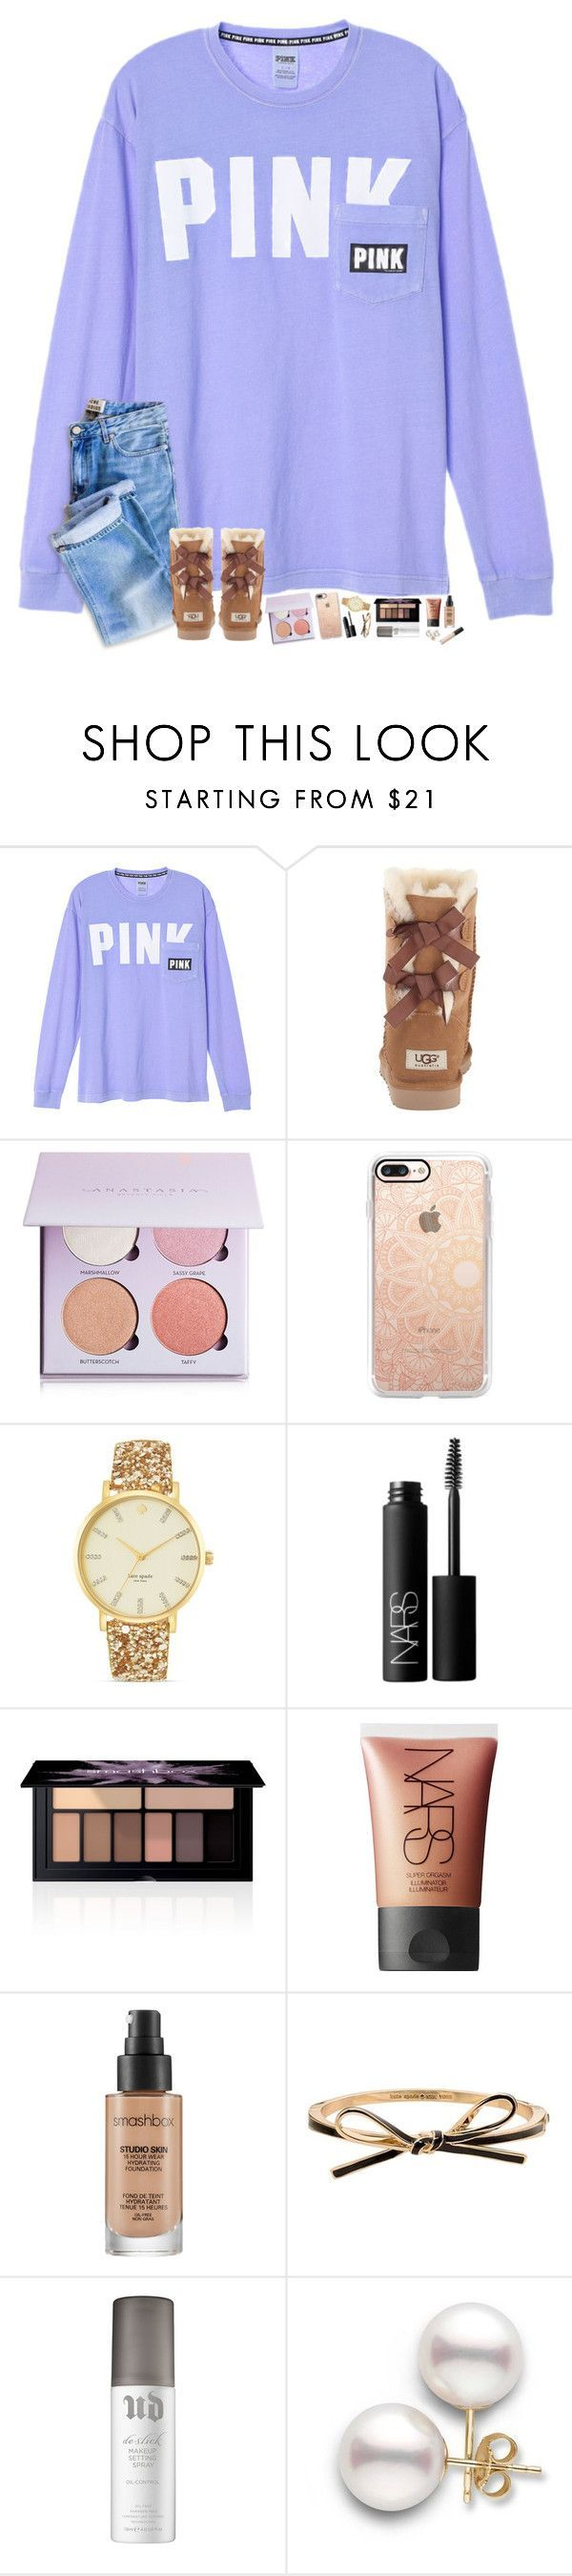 """""""going to try some new stuff on here.. updates in d 💜"""" by hopemarlee ❤ liked on Polyvore featuring UGG Australia, Anastasia Beverly Hills, Casetify, Kate Spade, NARS Cosmetics, Smashbox, Urban Decay, Too Faced Cosmetics and hmsloves"""